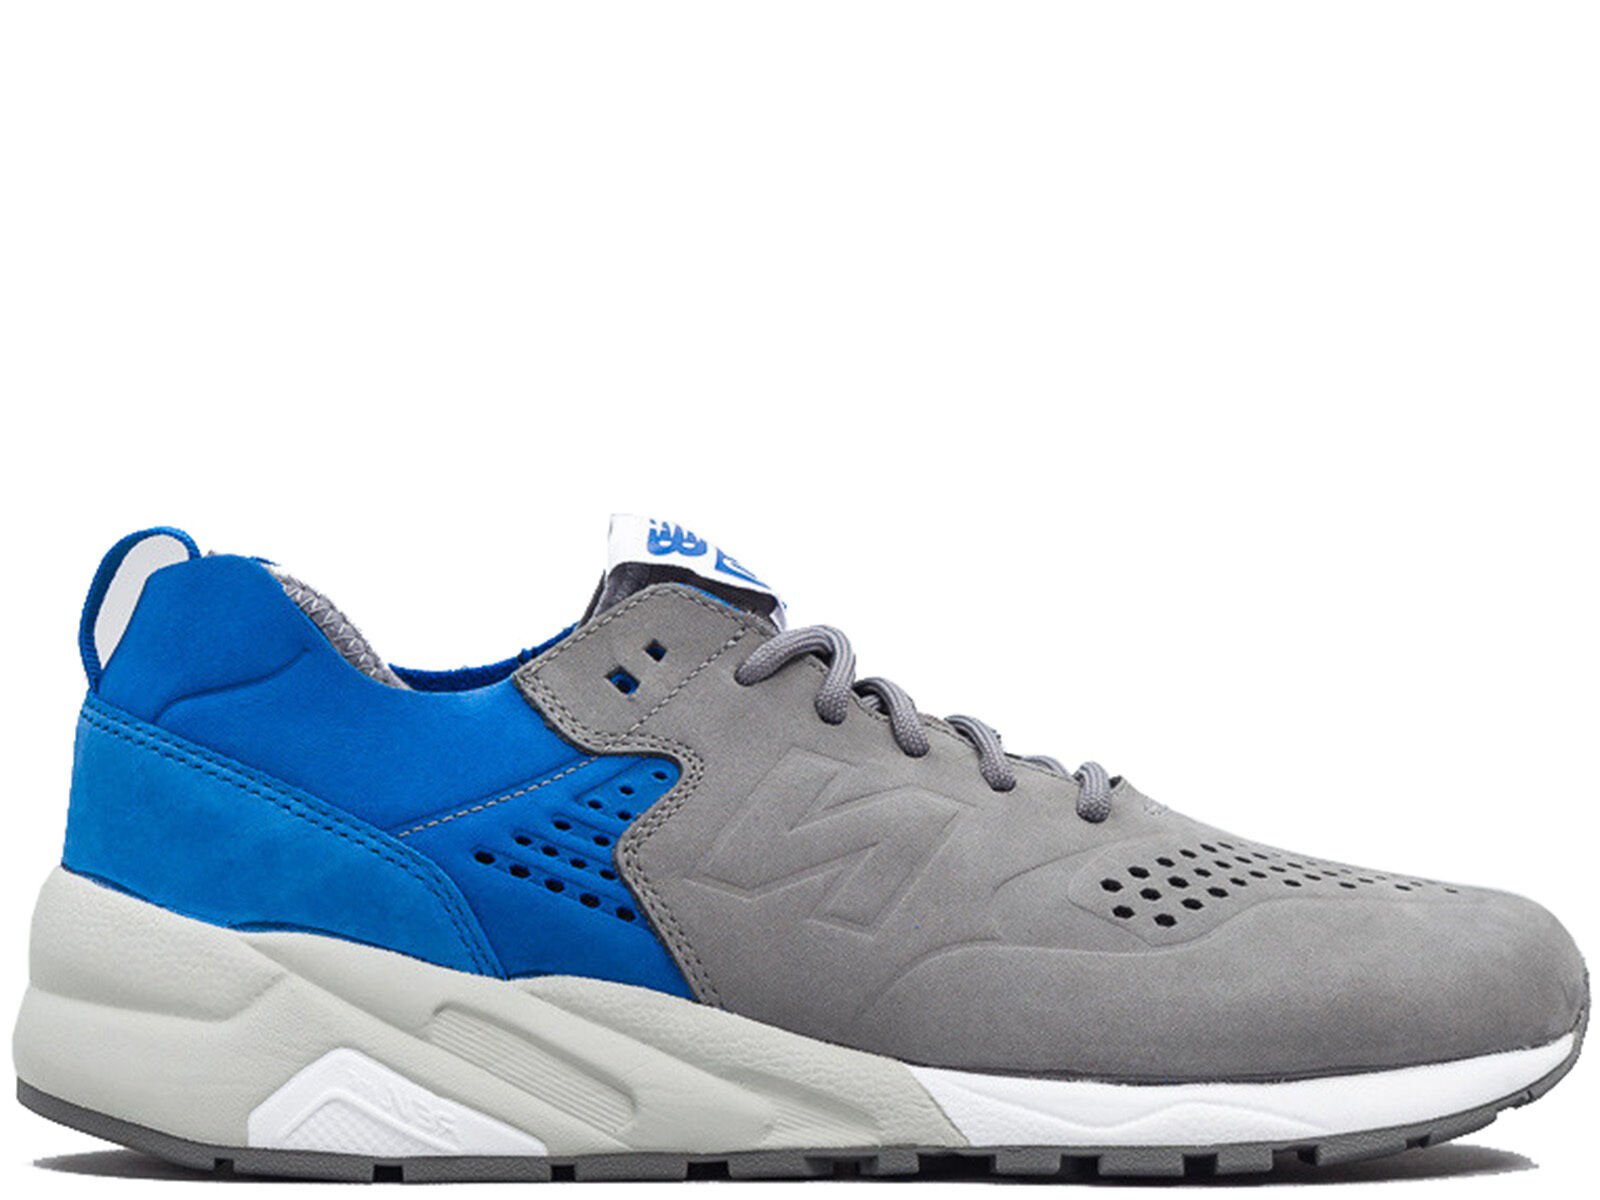 Brand New New Balance Collete Men's Athletic Fashion Sneakers [MRT580D5]